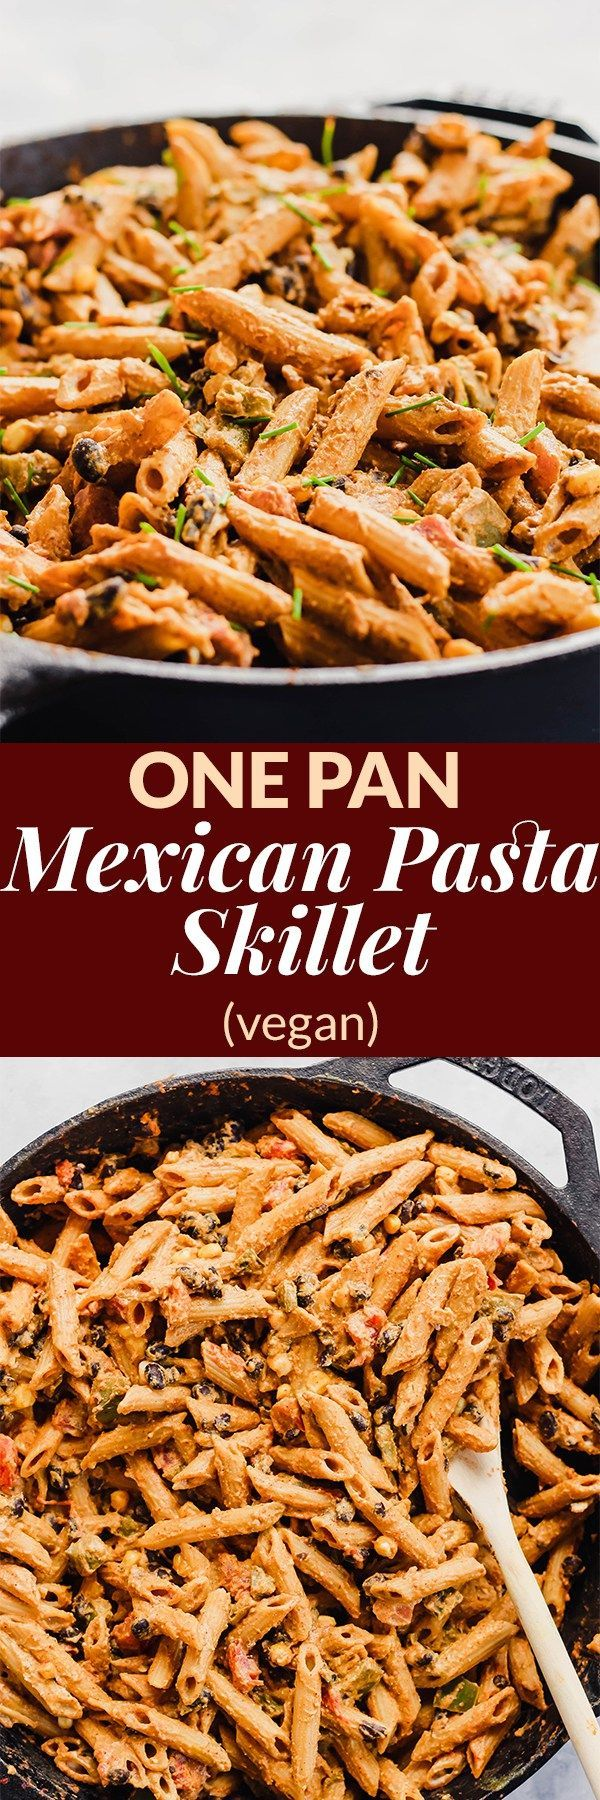 Pan Mexican Pasta Skillet (vegan) Dinner is served in 30 minutes with this One Pan Mexican Pasta Skillet with a dairy-free chipotle yogurt sauce! It's insanely satisfying thanks to 16 grams of plant protein per serving. (vegan) @PompeianDinner is served in 30 minutes with this One Pan Mexican Pasta Skillet with a dairy-free chipotle y...